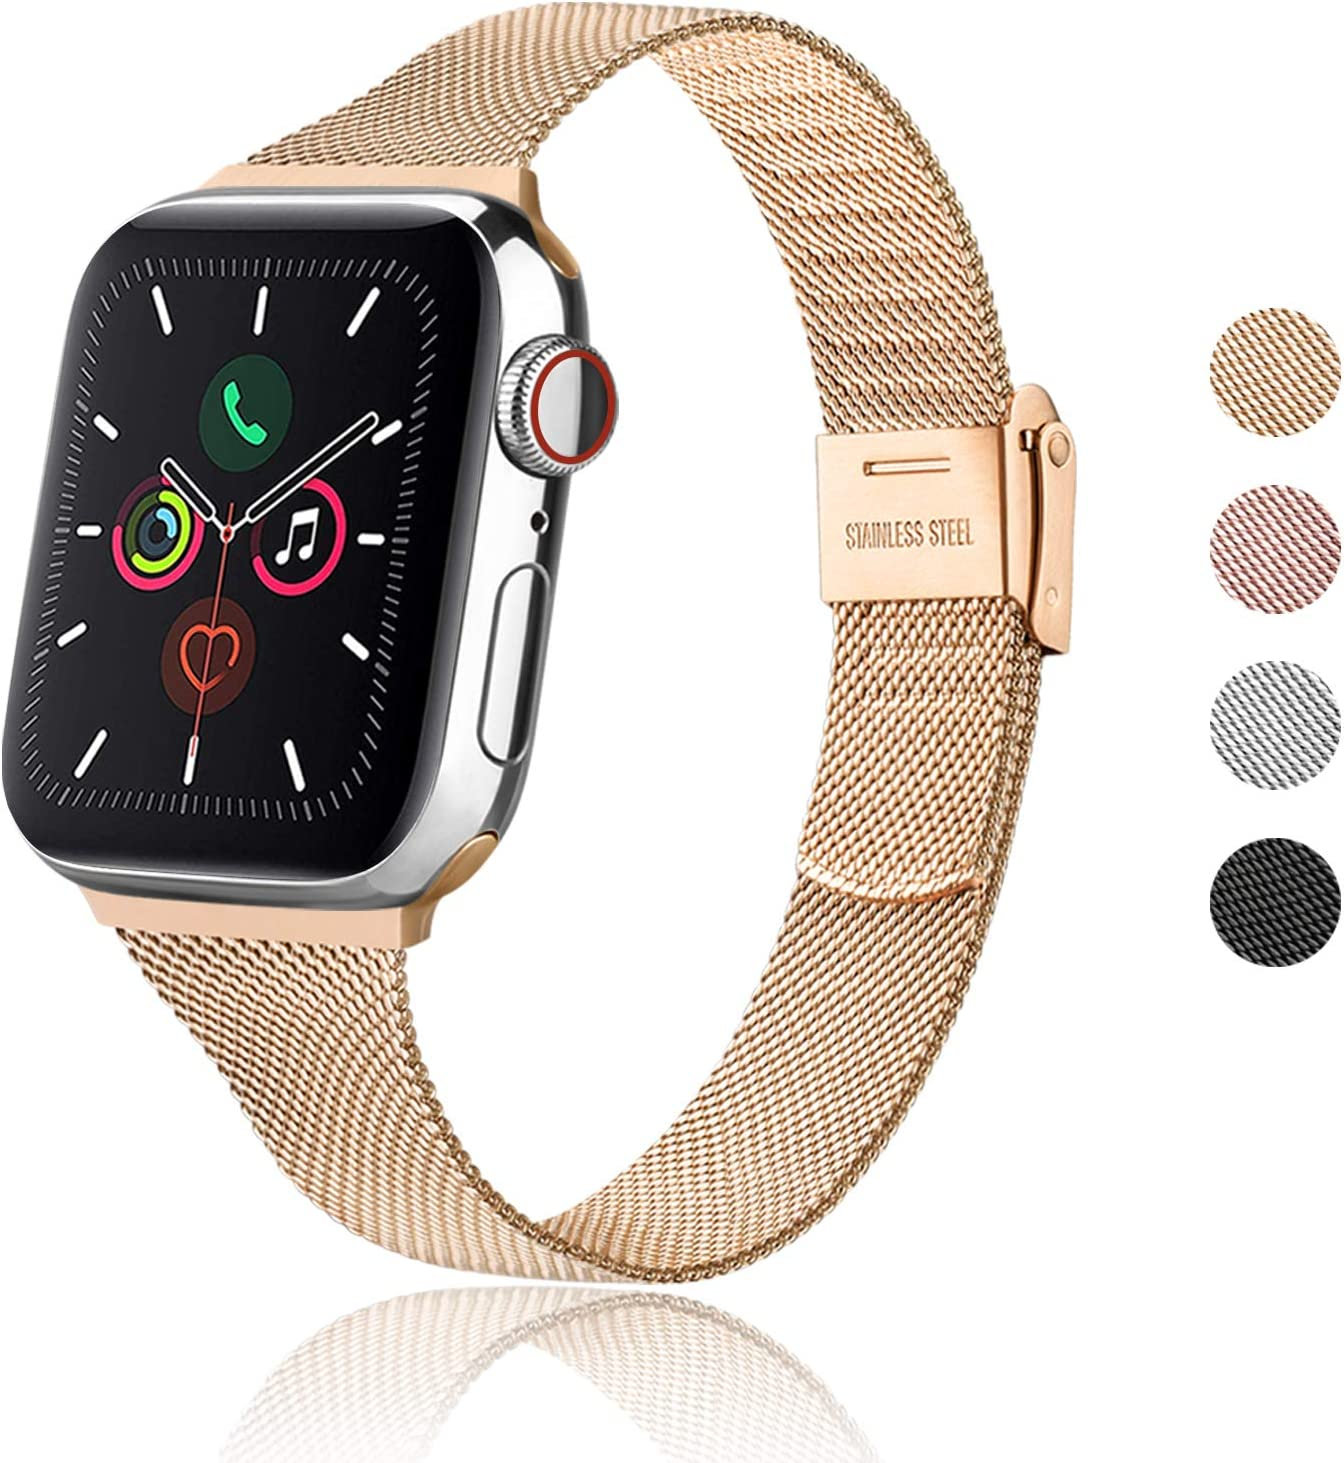 Meliya Metal Slim Bands Compatible with Apple Watch Band 38mm 40mm 42mm 44mm, Stainless Steel Metal Clasp Thin Replacement Band for iWatch Series 5 4 3 2 1 (Rose Gold, 42mm/44mm)